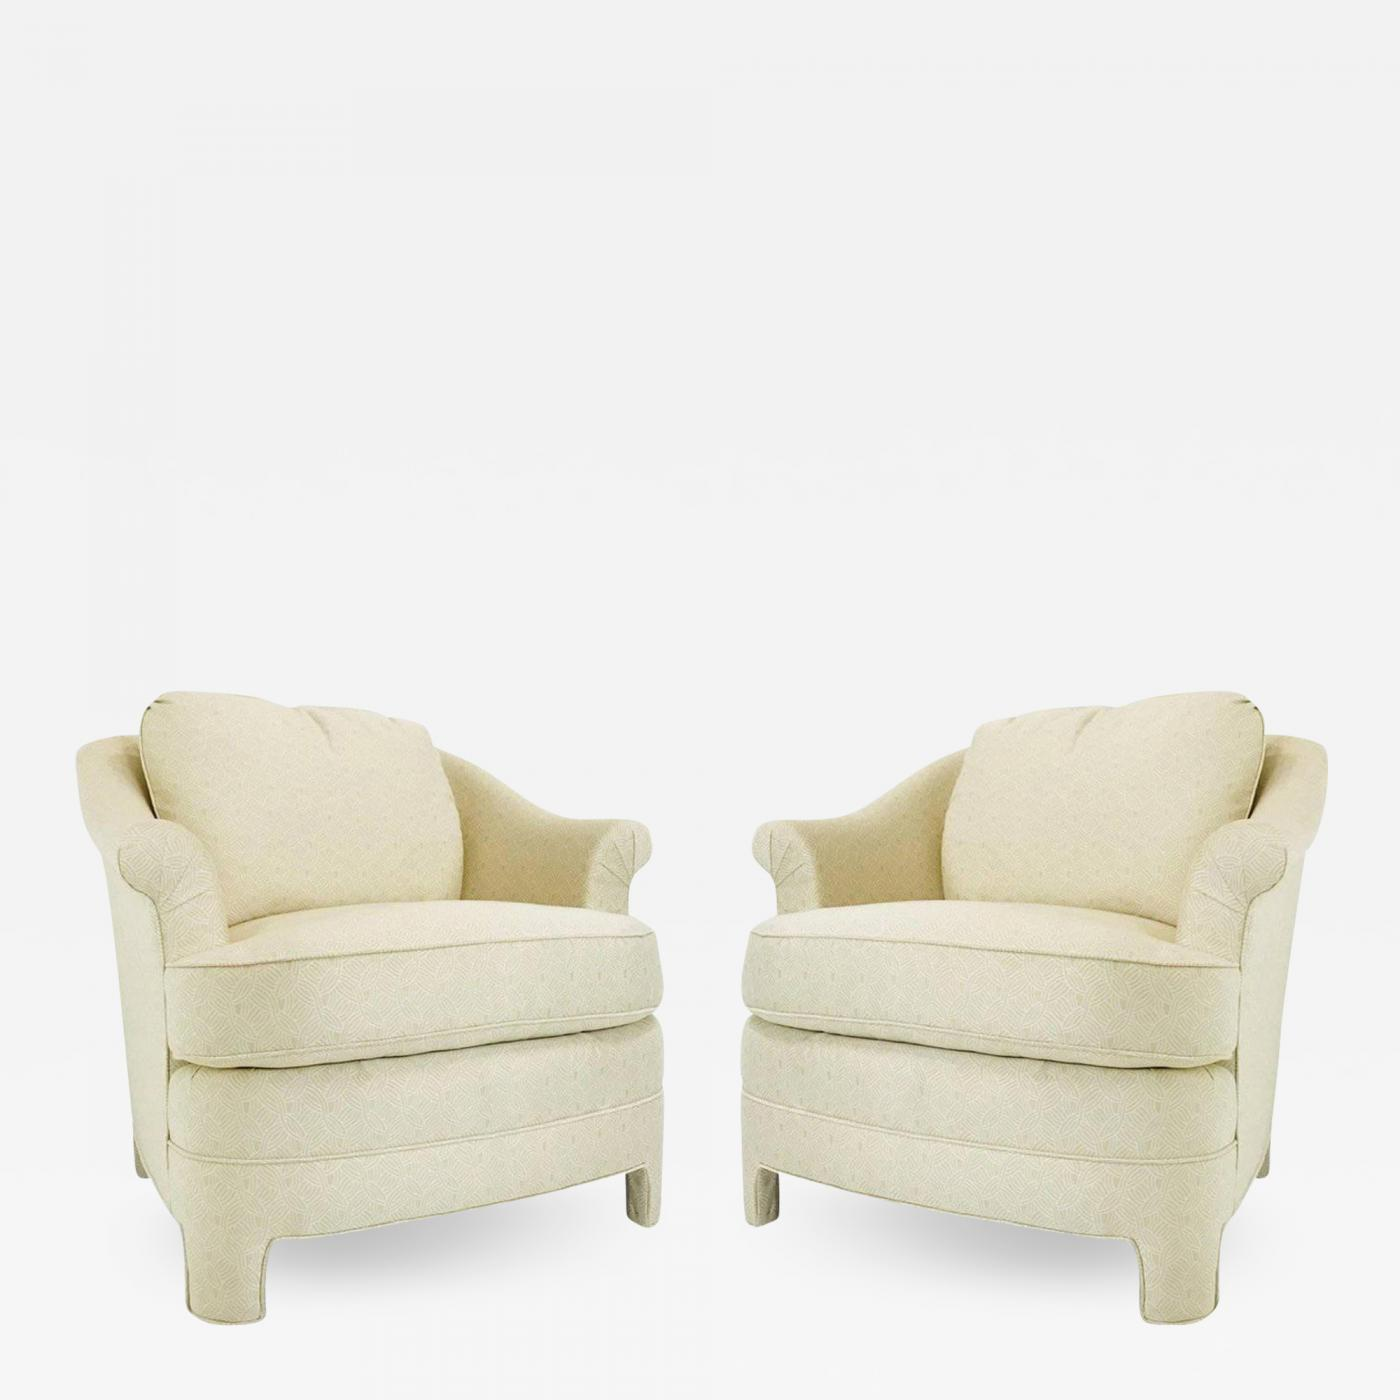 Henredon Furniture - Pair of Henredon Asian Influenced Armchairs and Ottoman